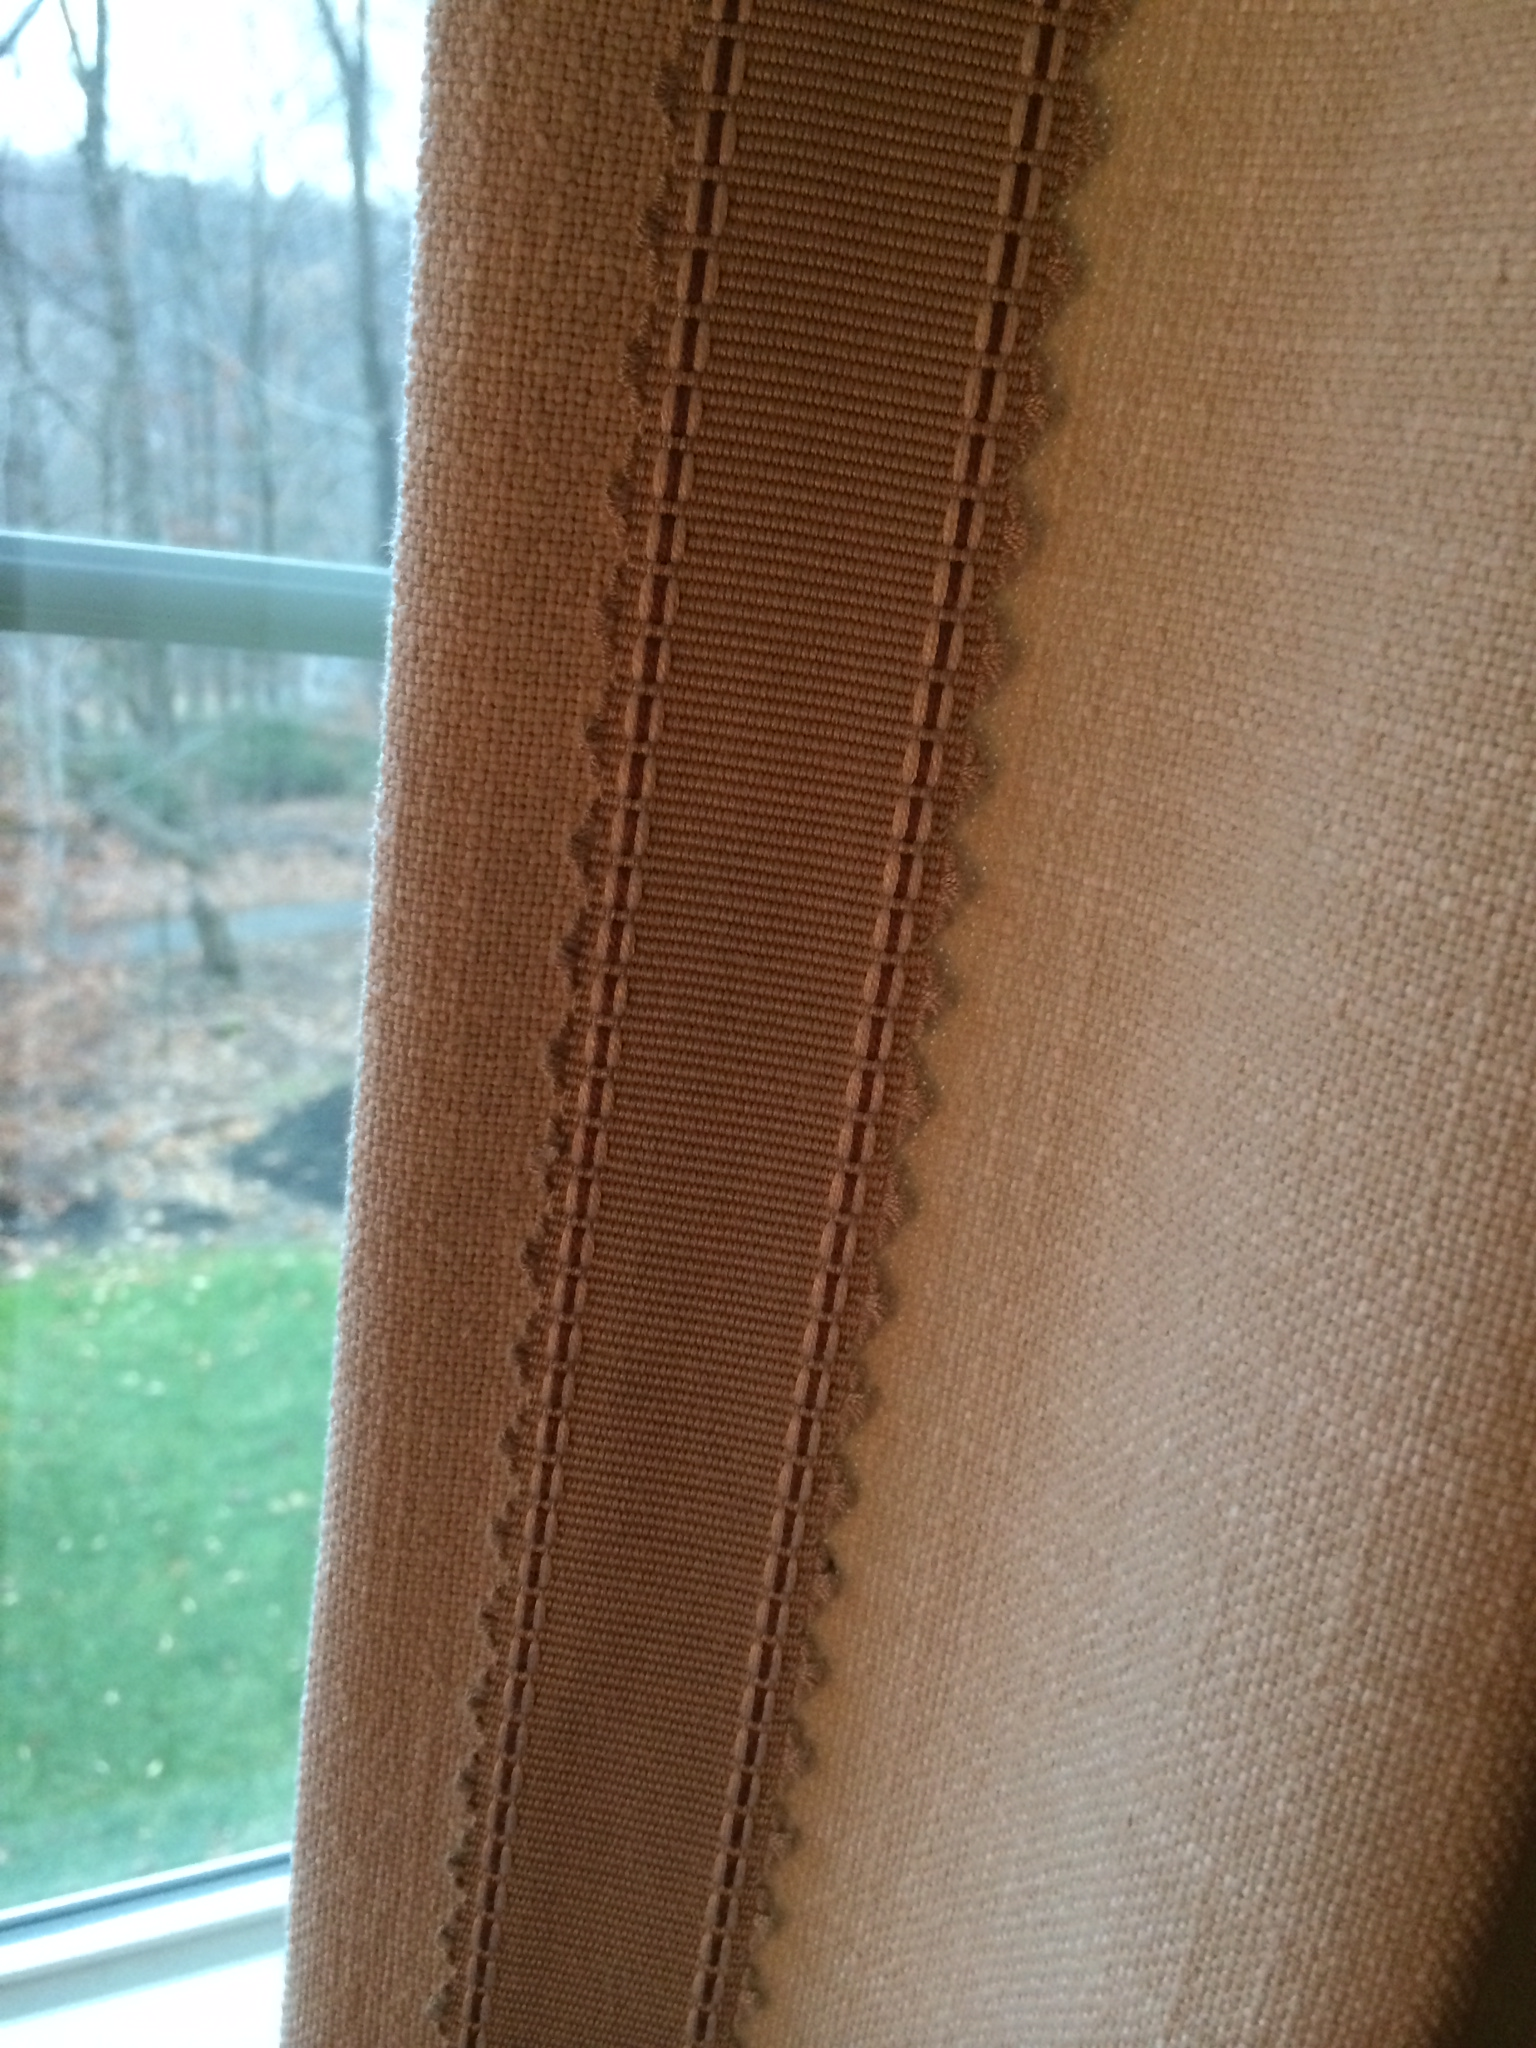 Close up detail of accent banding on drapery